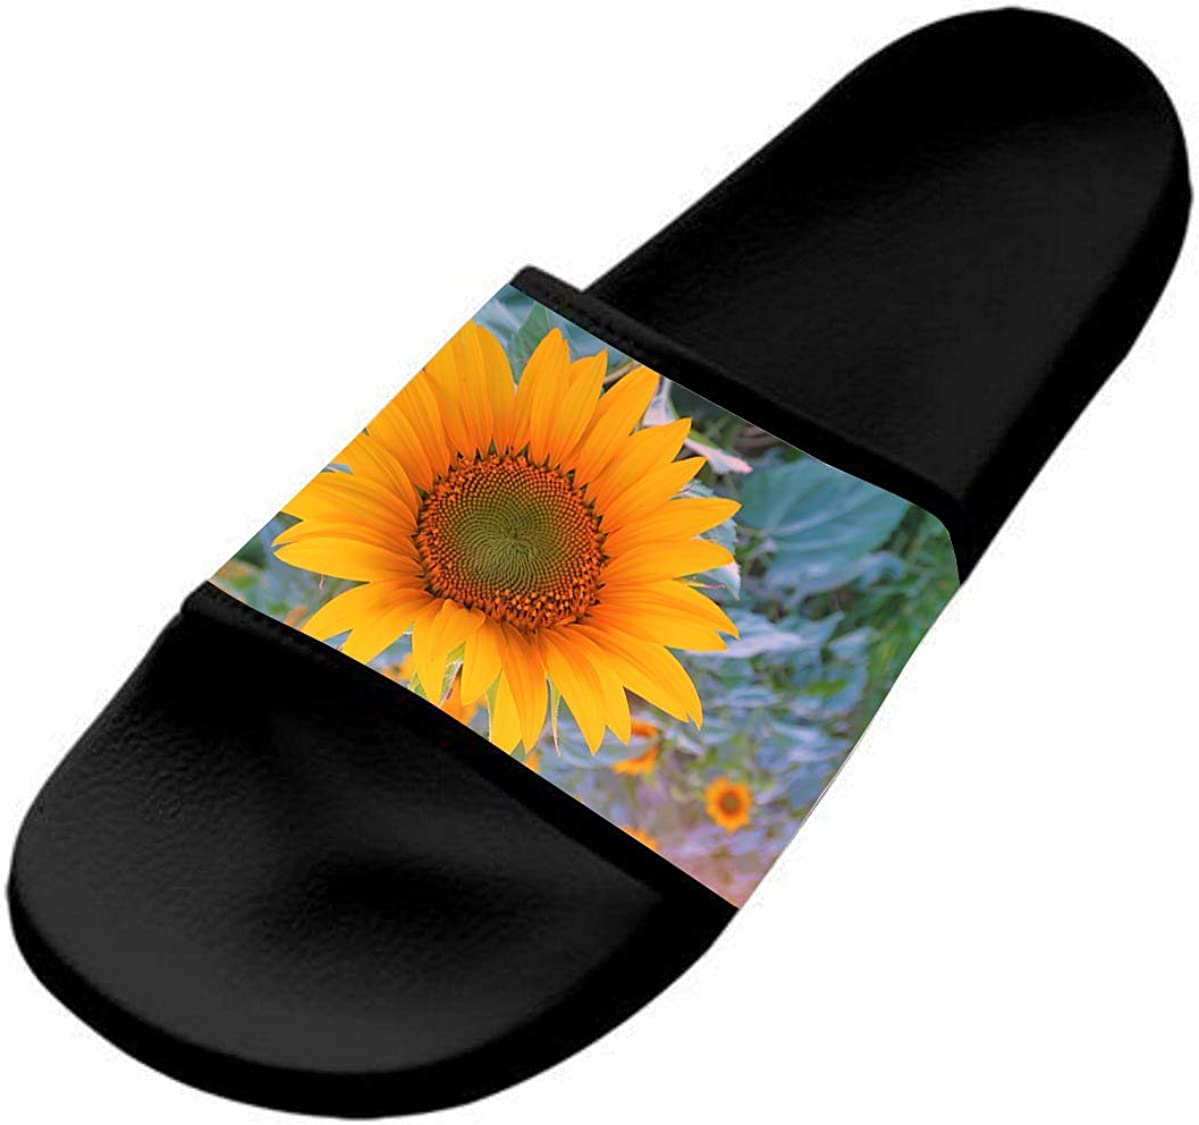 Sunflower Casual and Stylish Sports Slippers for Kids are Flat and Comfortable